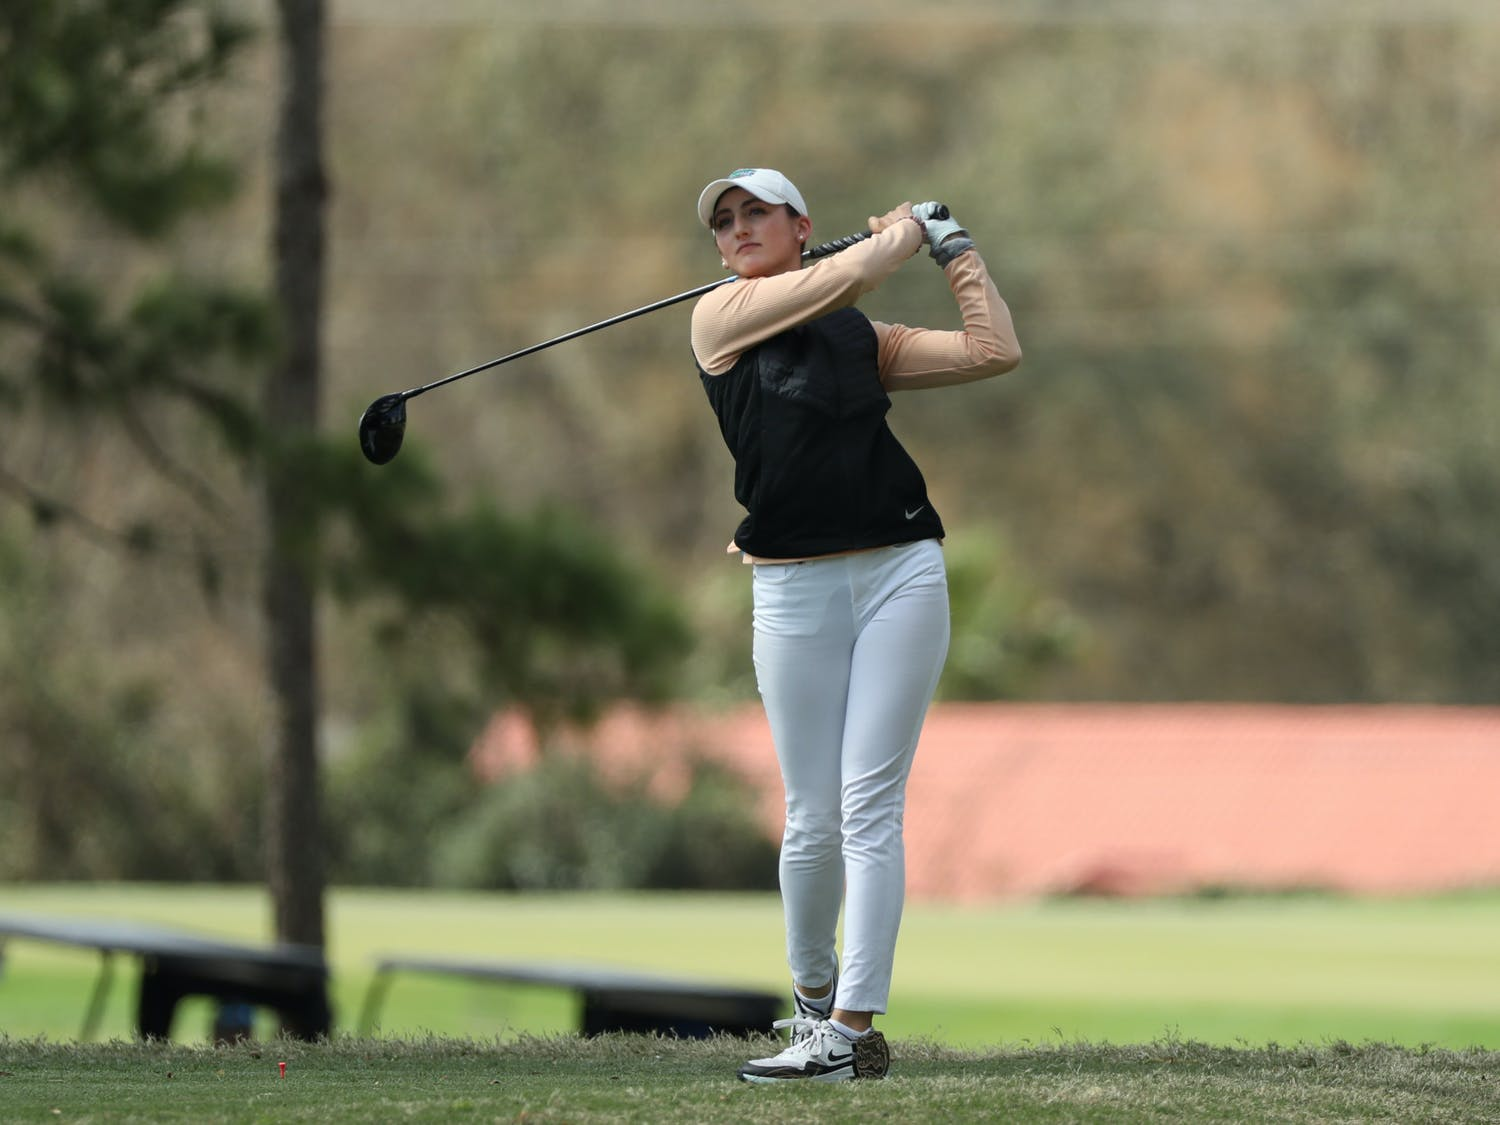 Florida Gators women's golf on Monday, February 22, 2021 at the Mark Bostick Golf Course in Gainesville, FL / UAA Communications photo by Isabella Marley